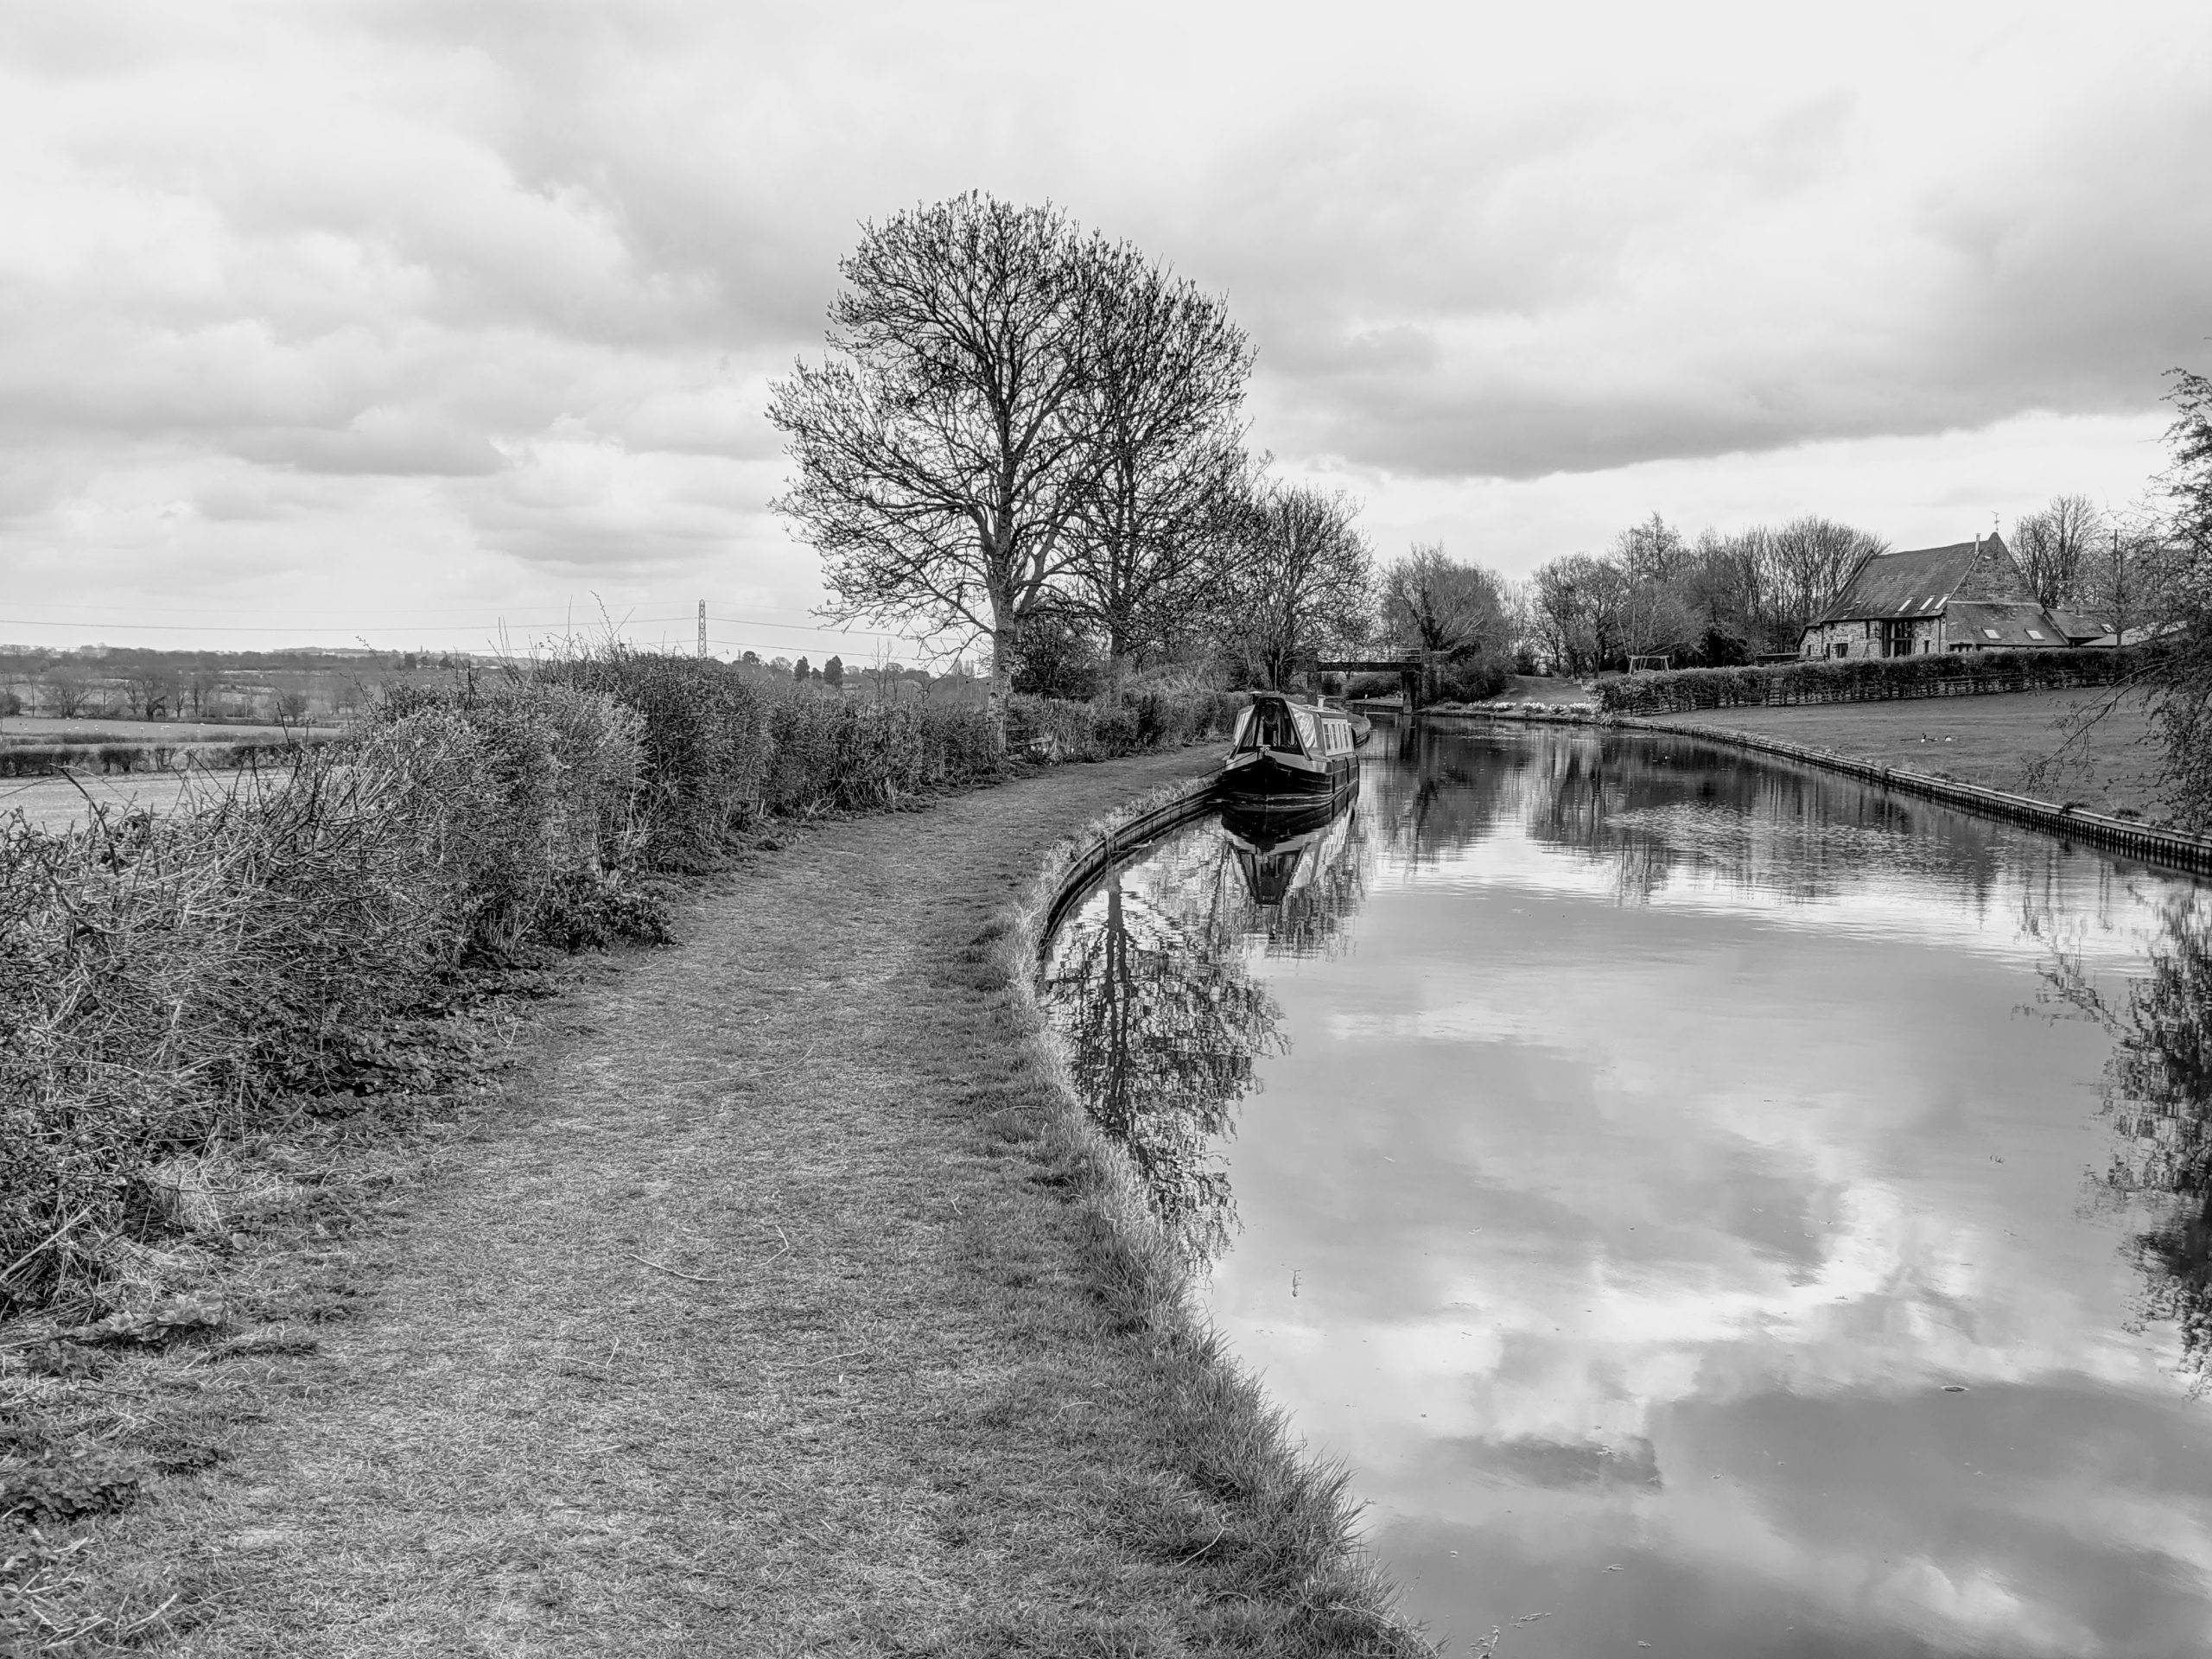 Covid on the cut - Part 2 - Moored in Flore